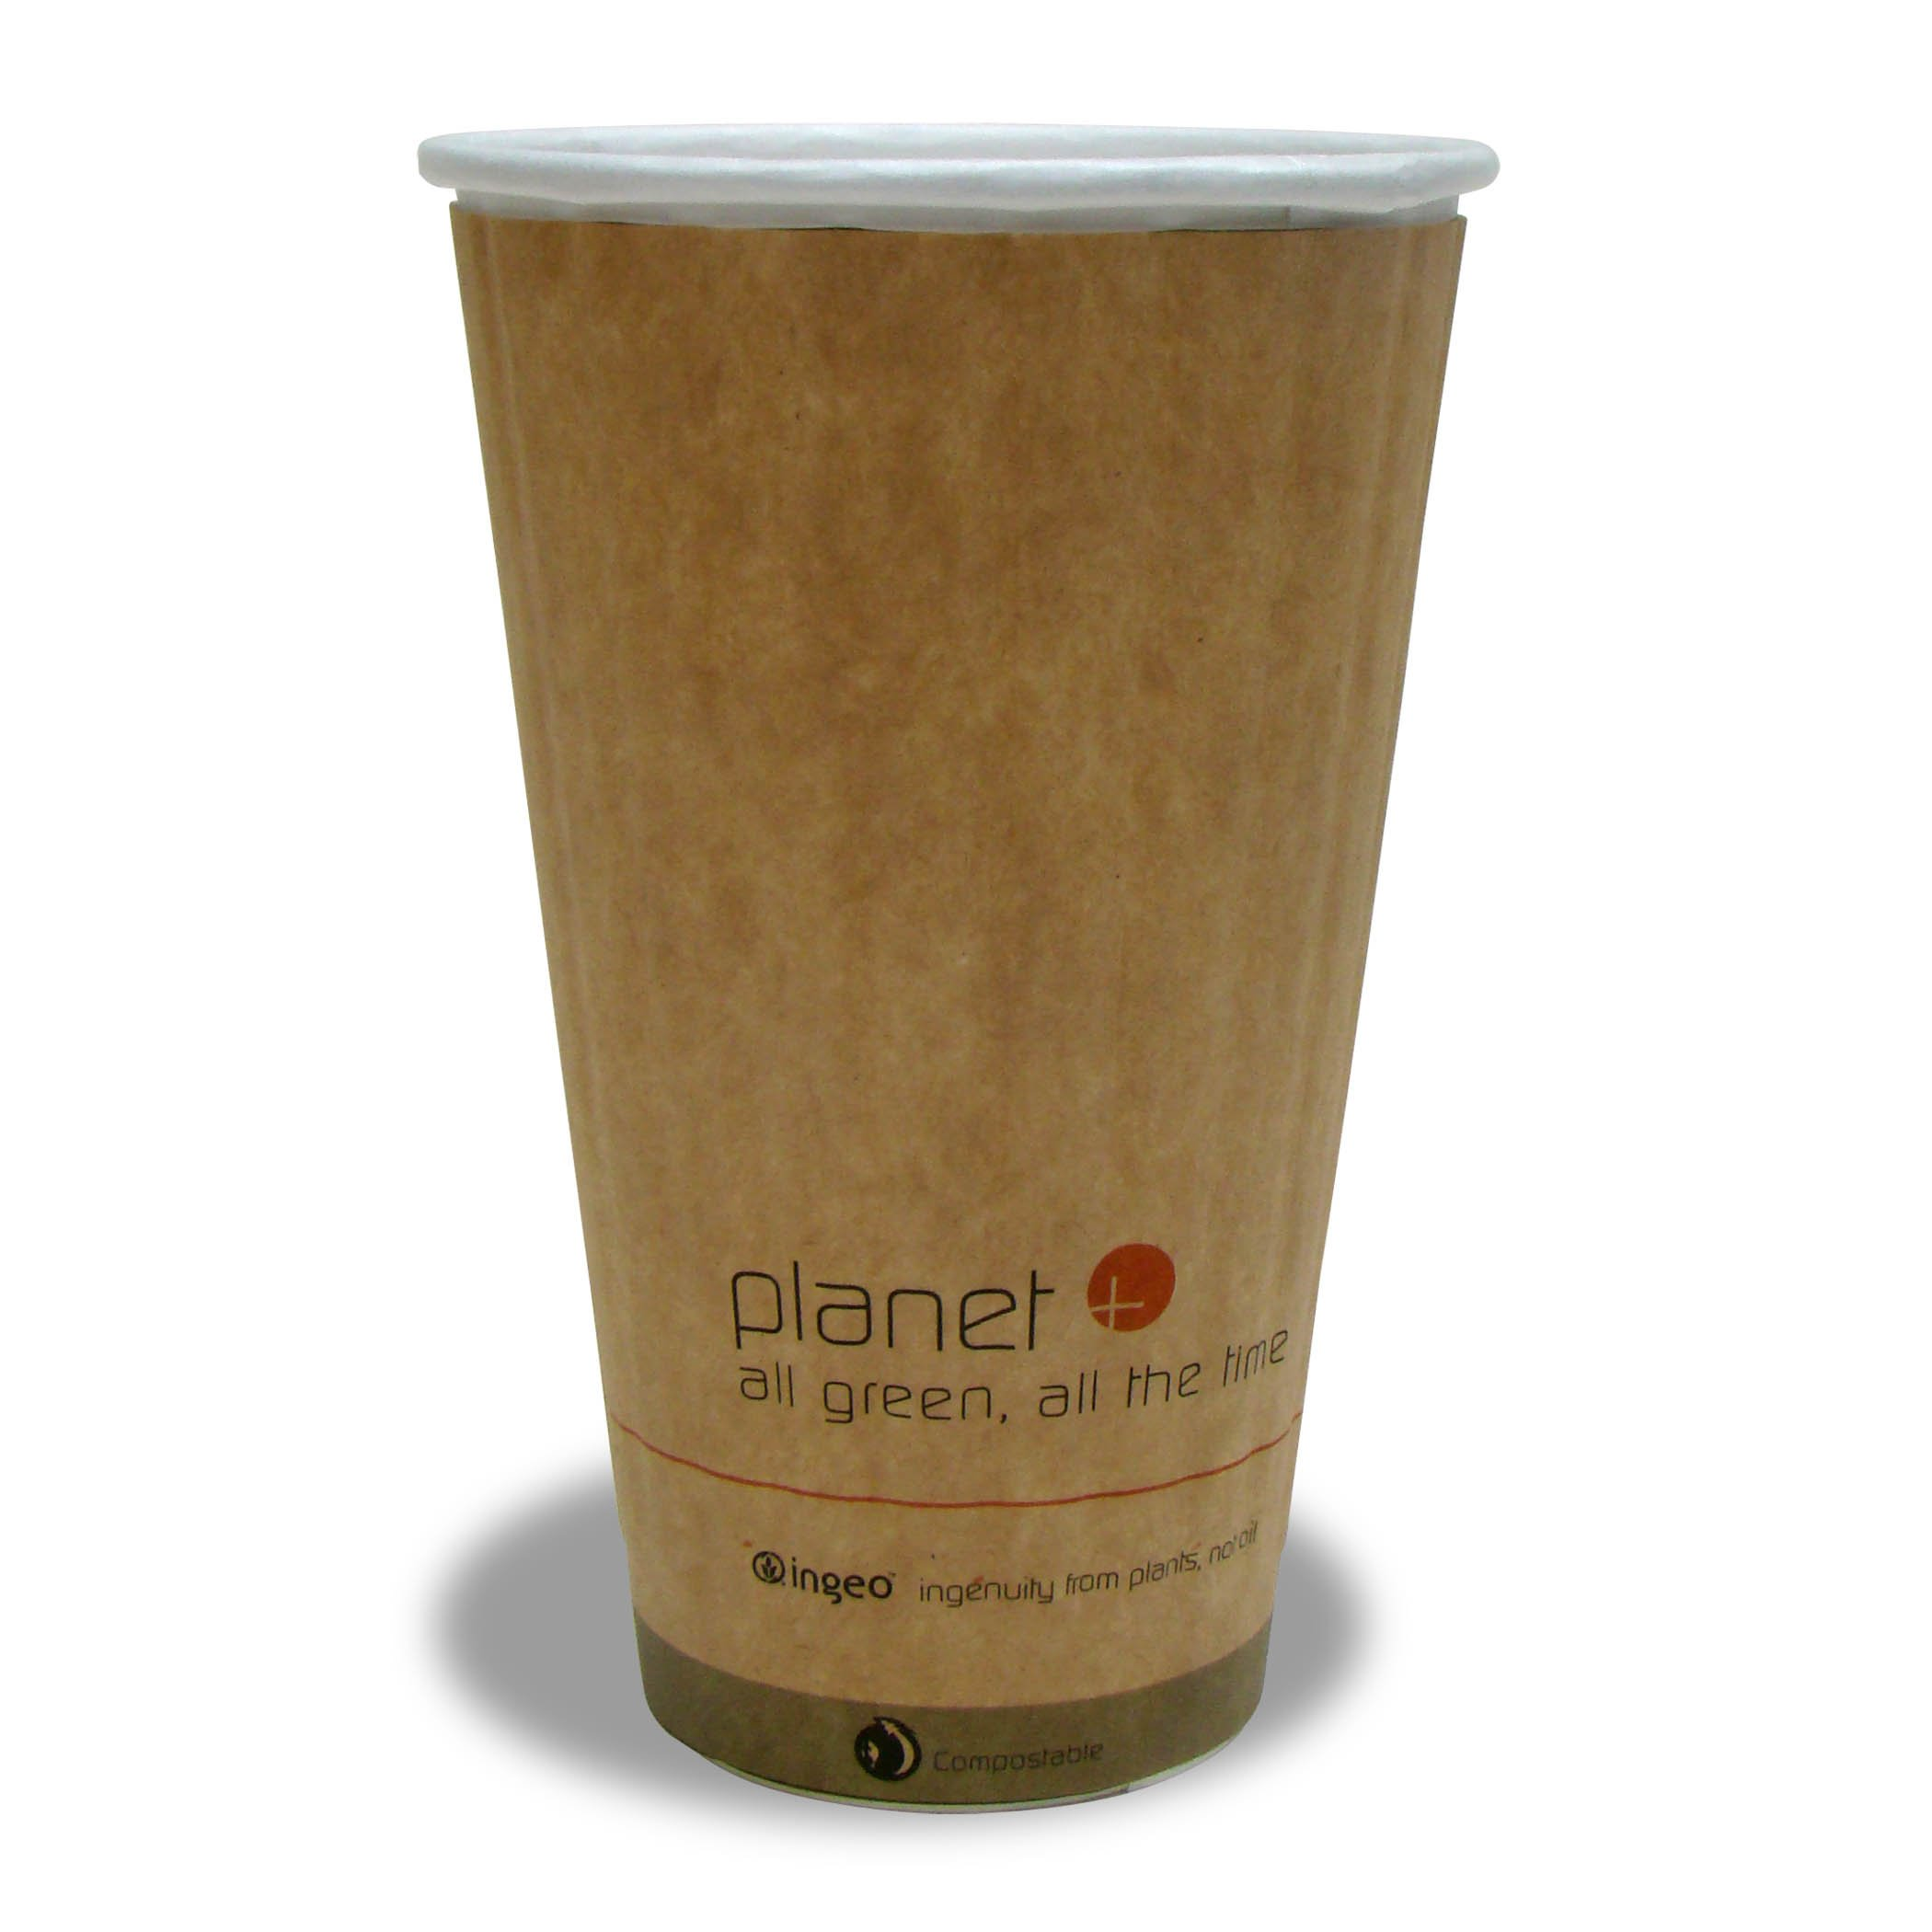 Planet + 100% Compostable PLA Laminated Double Wall Insulated Hot Cup, 16-Ounce, 600-Count Case